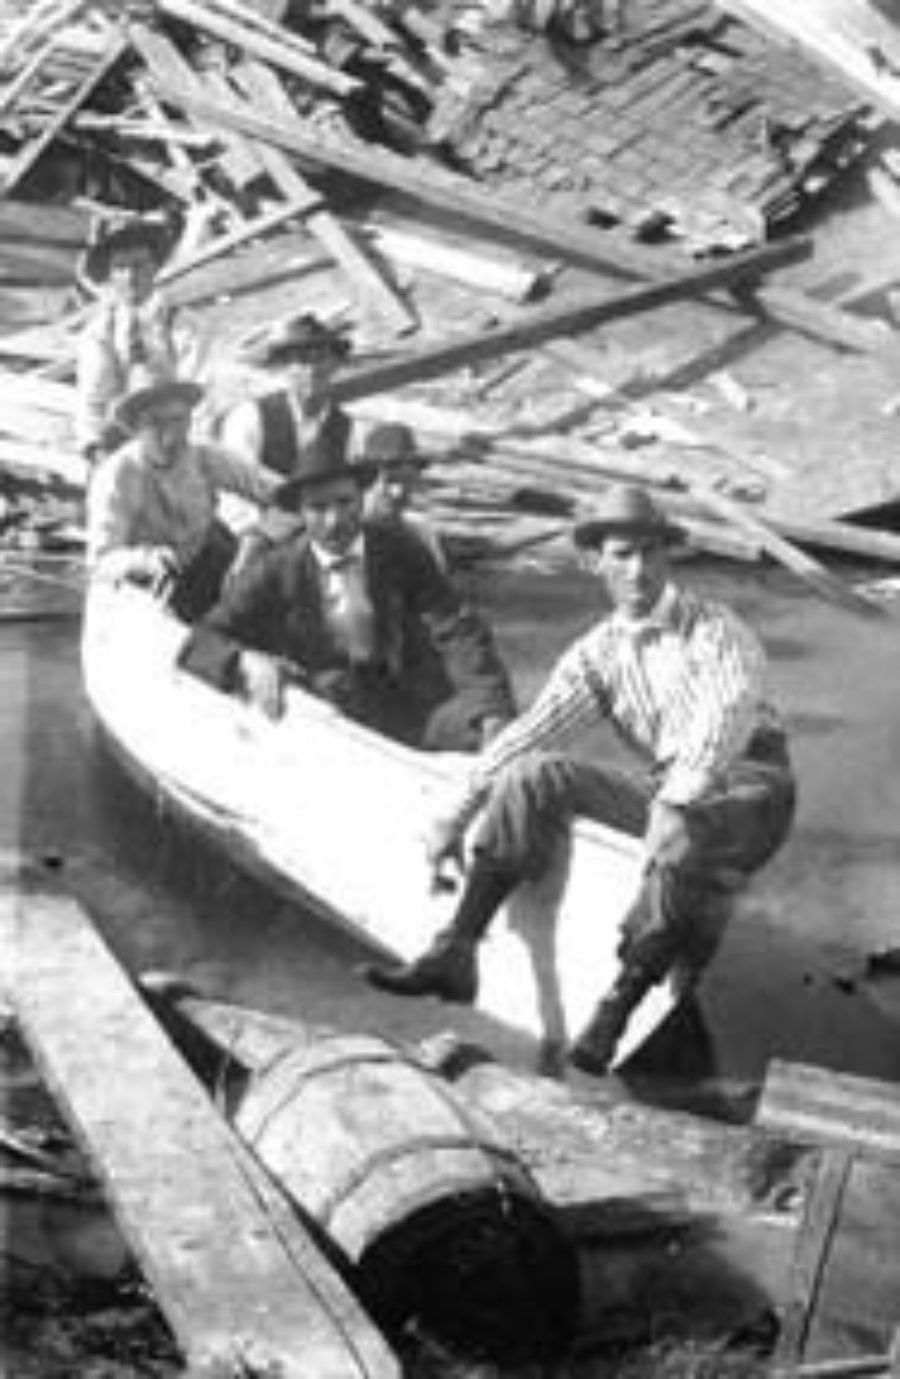 G-1771FF13.2-1 Boat & Crew used during the flood